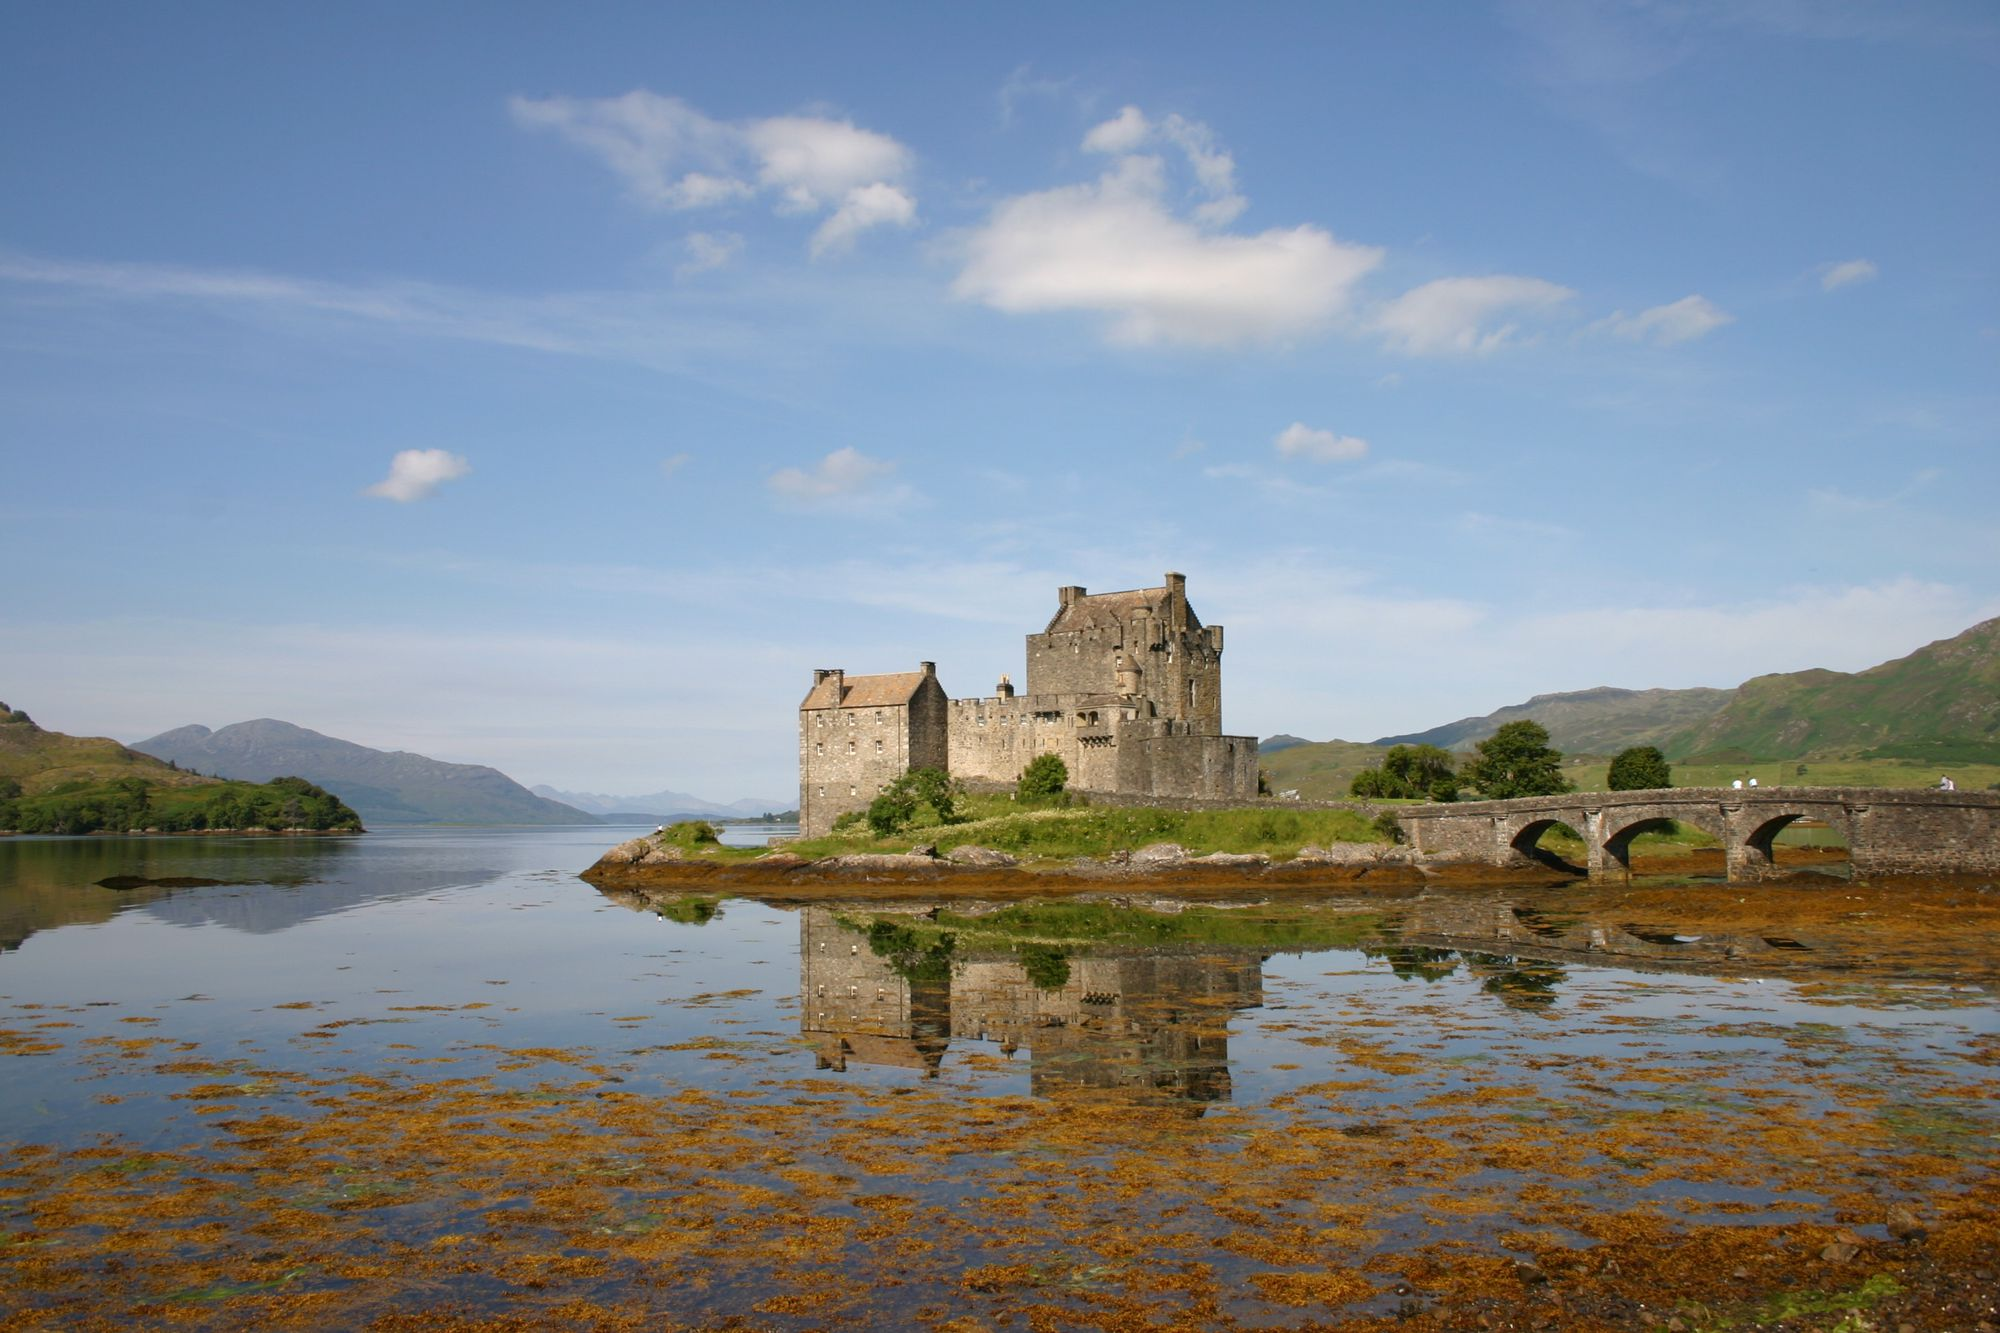 Hotels, Cottages, B&Bs & Glamping in Scotland - Cool Places to Stay in the UK